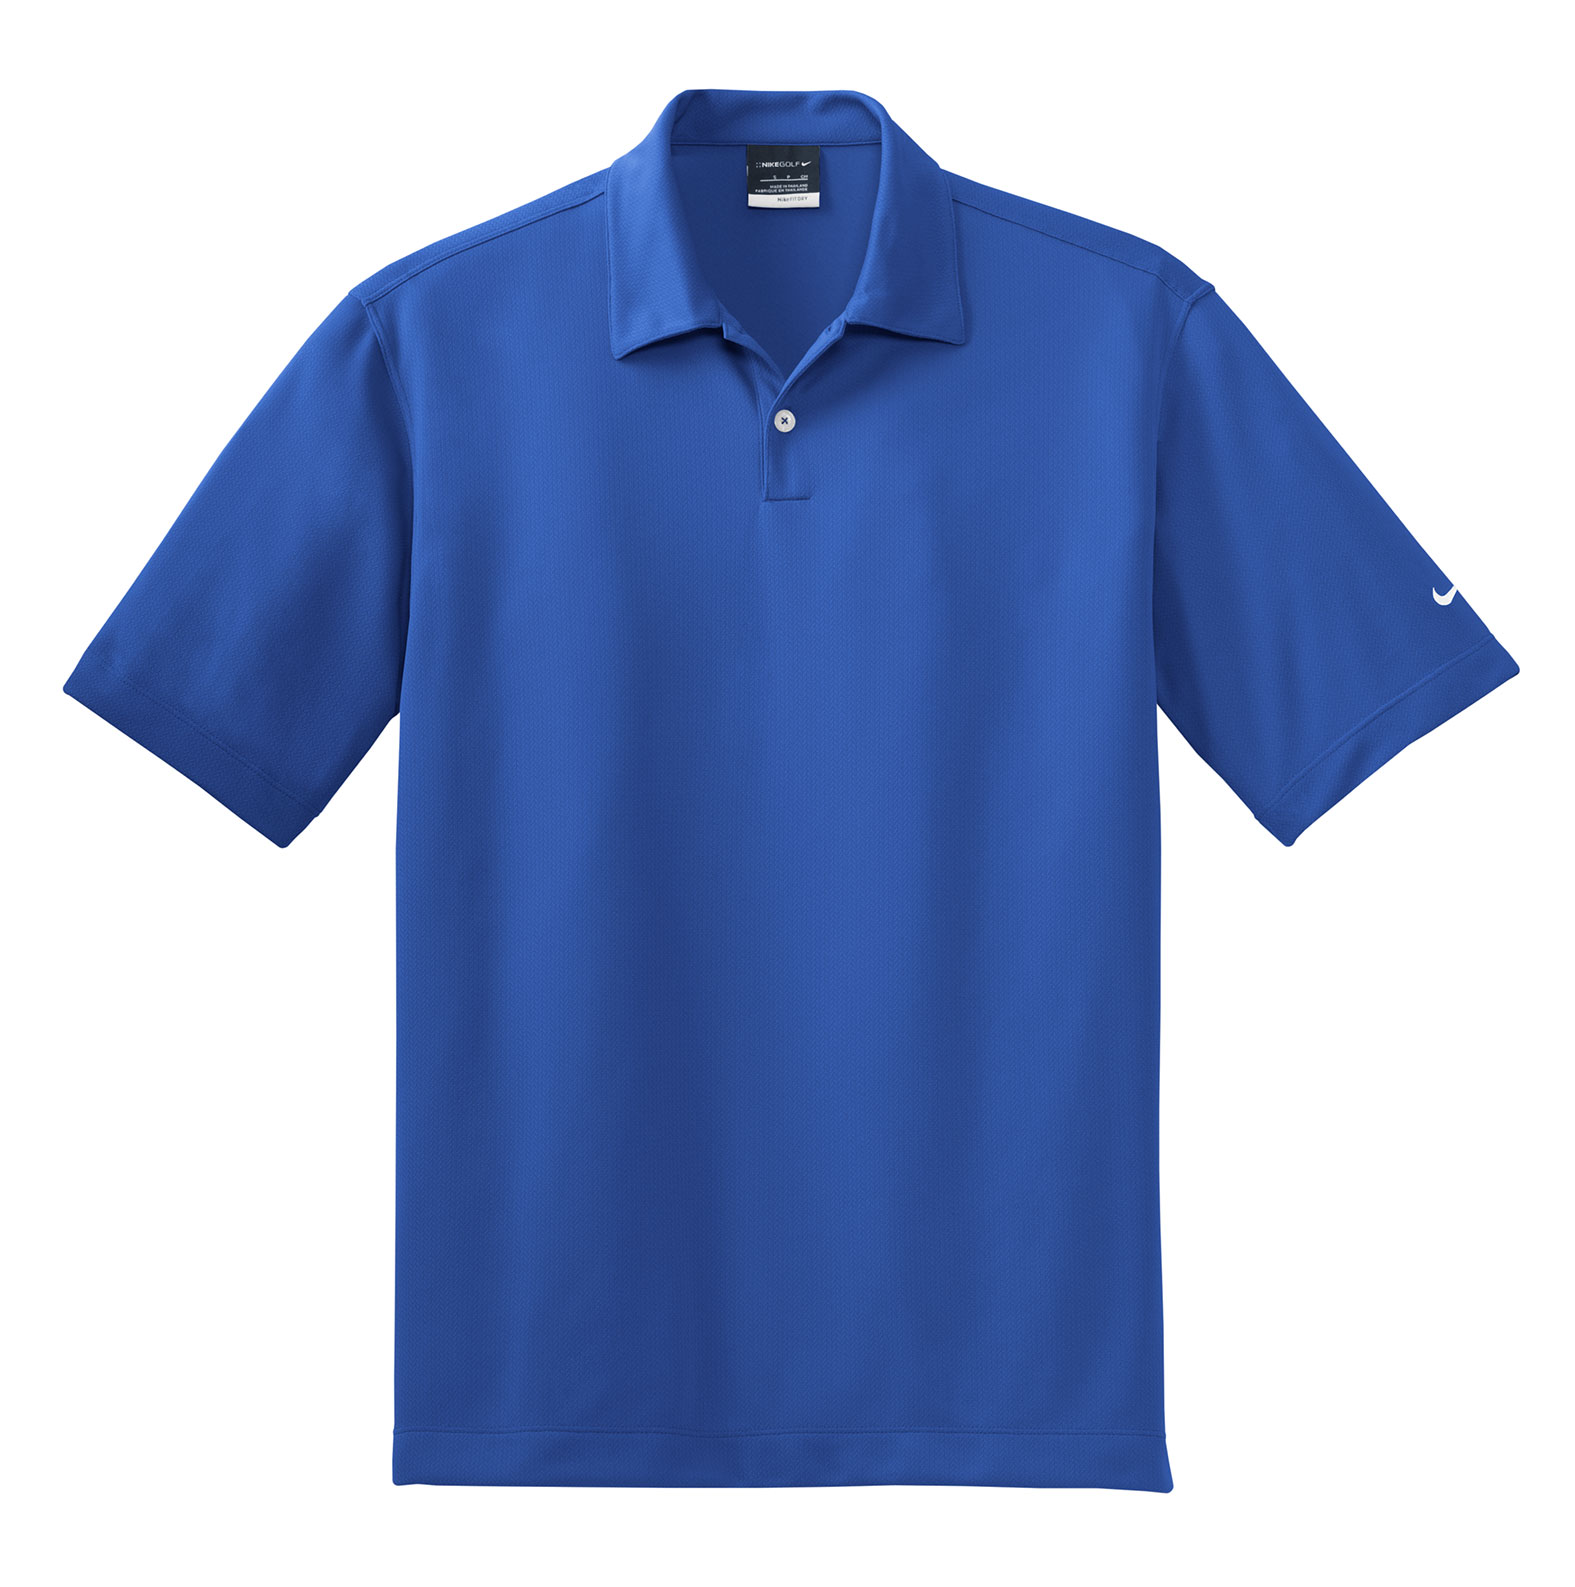 Nike Mens Dri-Fit Pebble Texture Polo